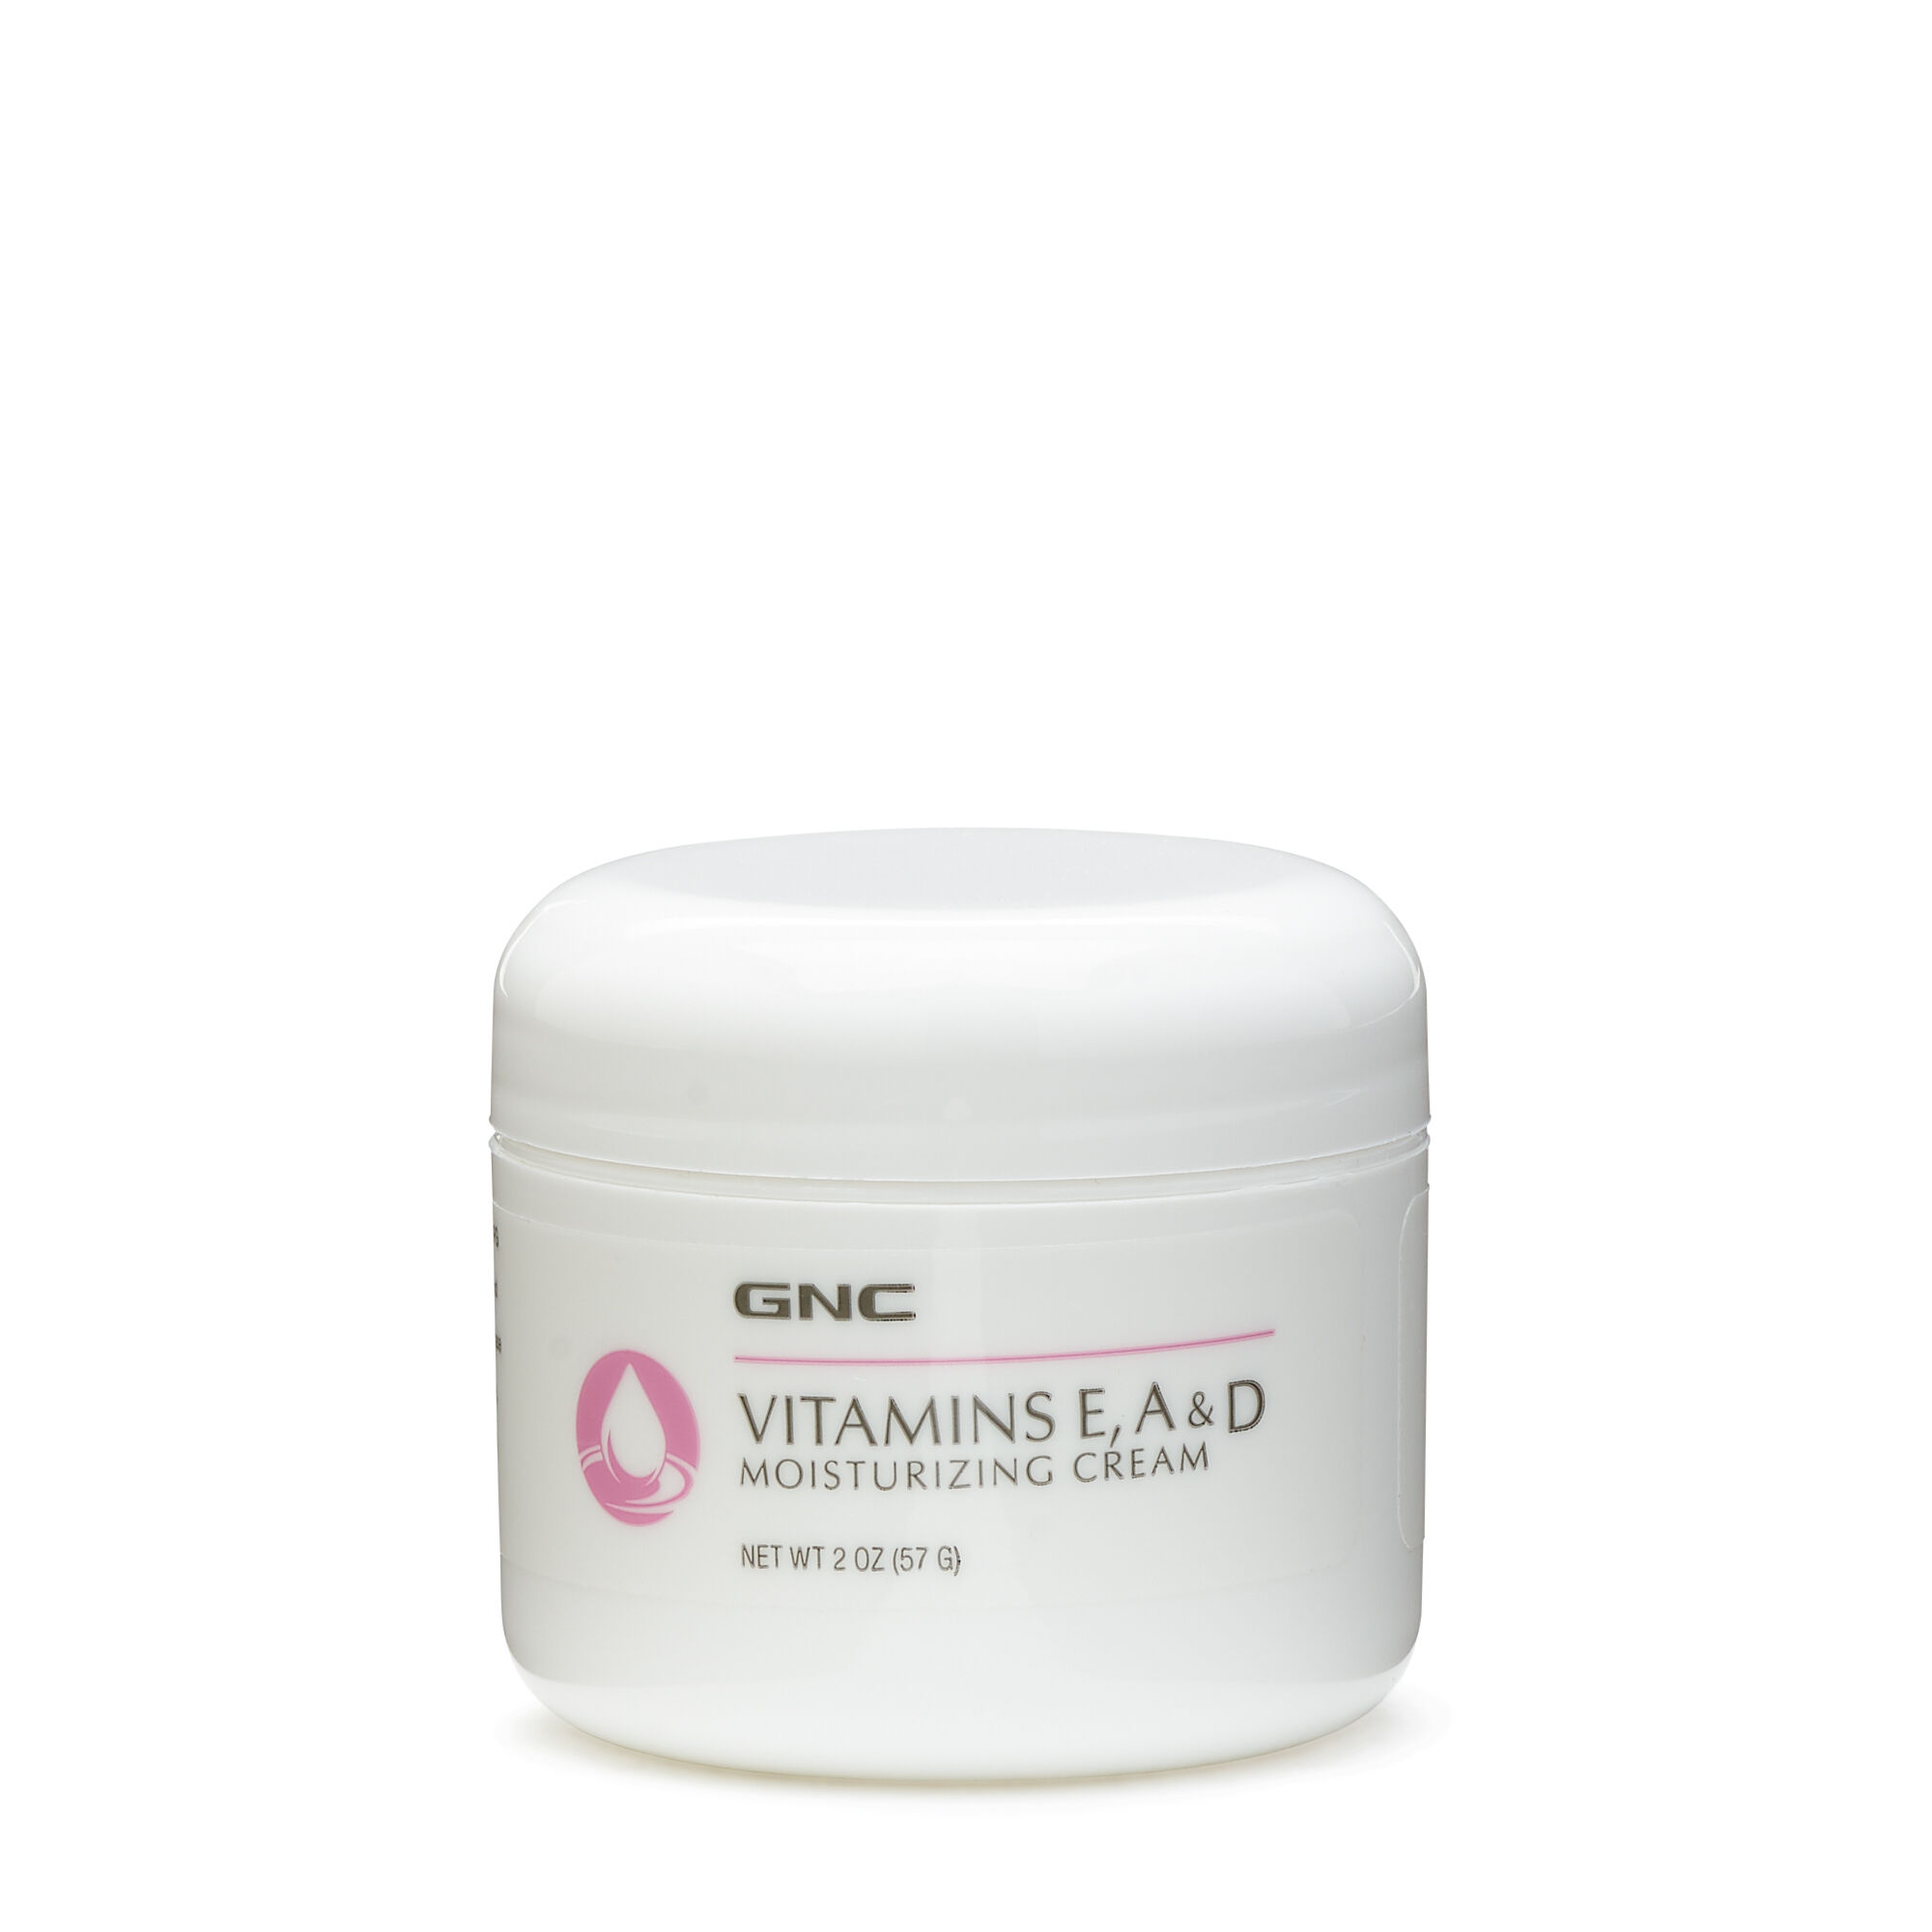 Vitamins E A & D Moisturizing Cream - 2 Oz(s) - Gnc - Lotions & Creams